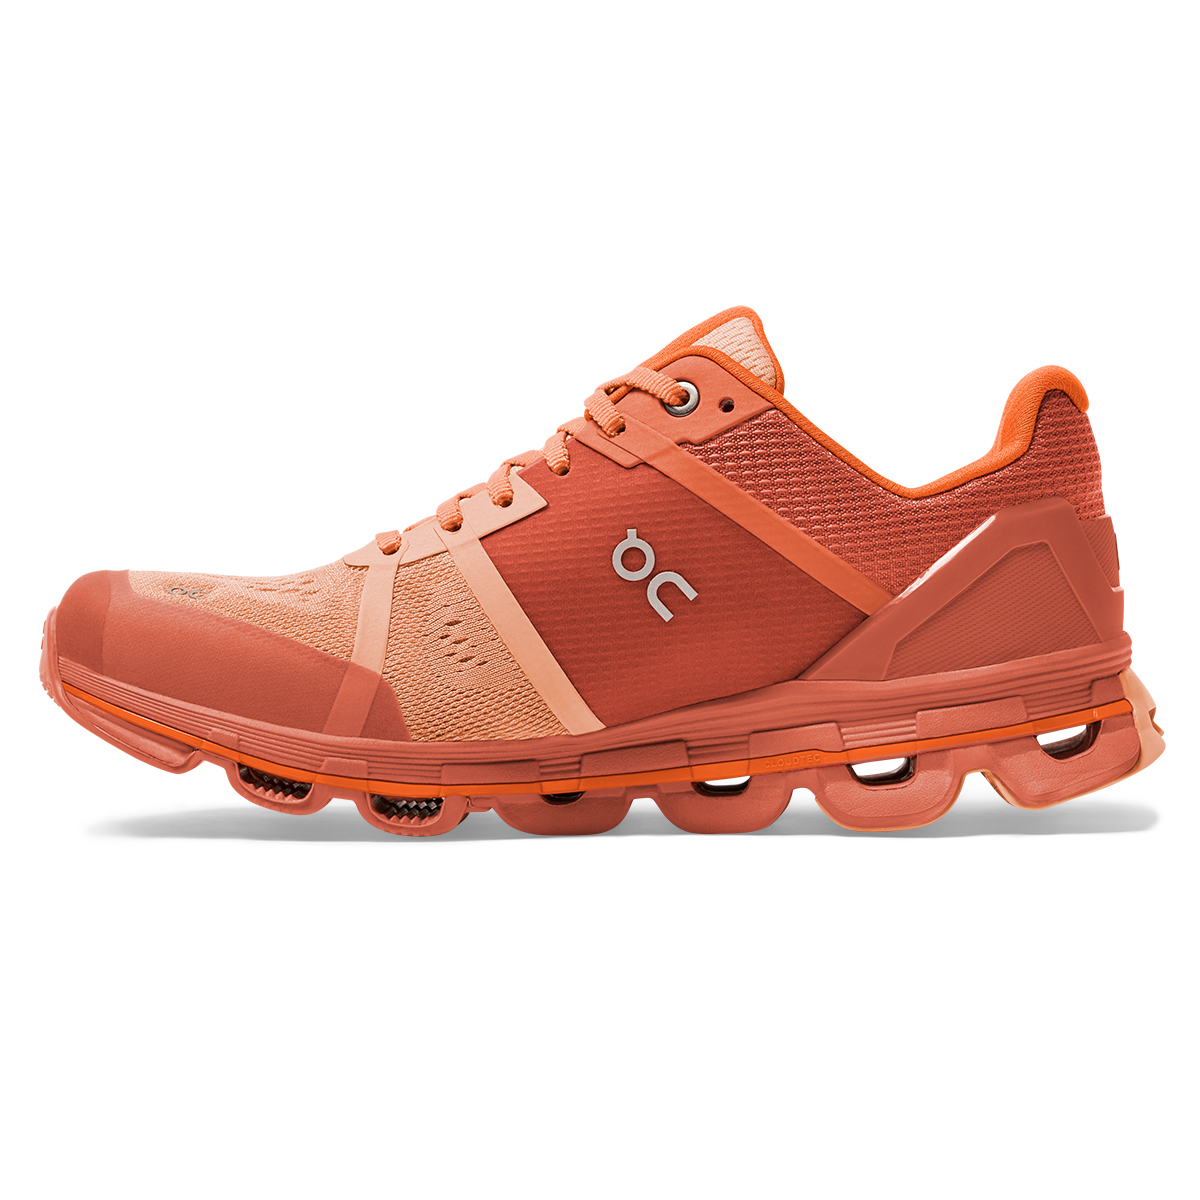 Women's On Cloudace Running Shoe - Color: Blush/Orange - Size: 5 - Width: Regular, Blush/Orange, large, image 2